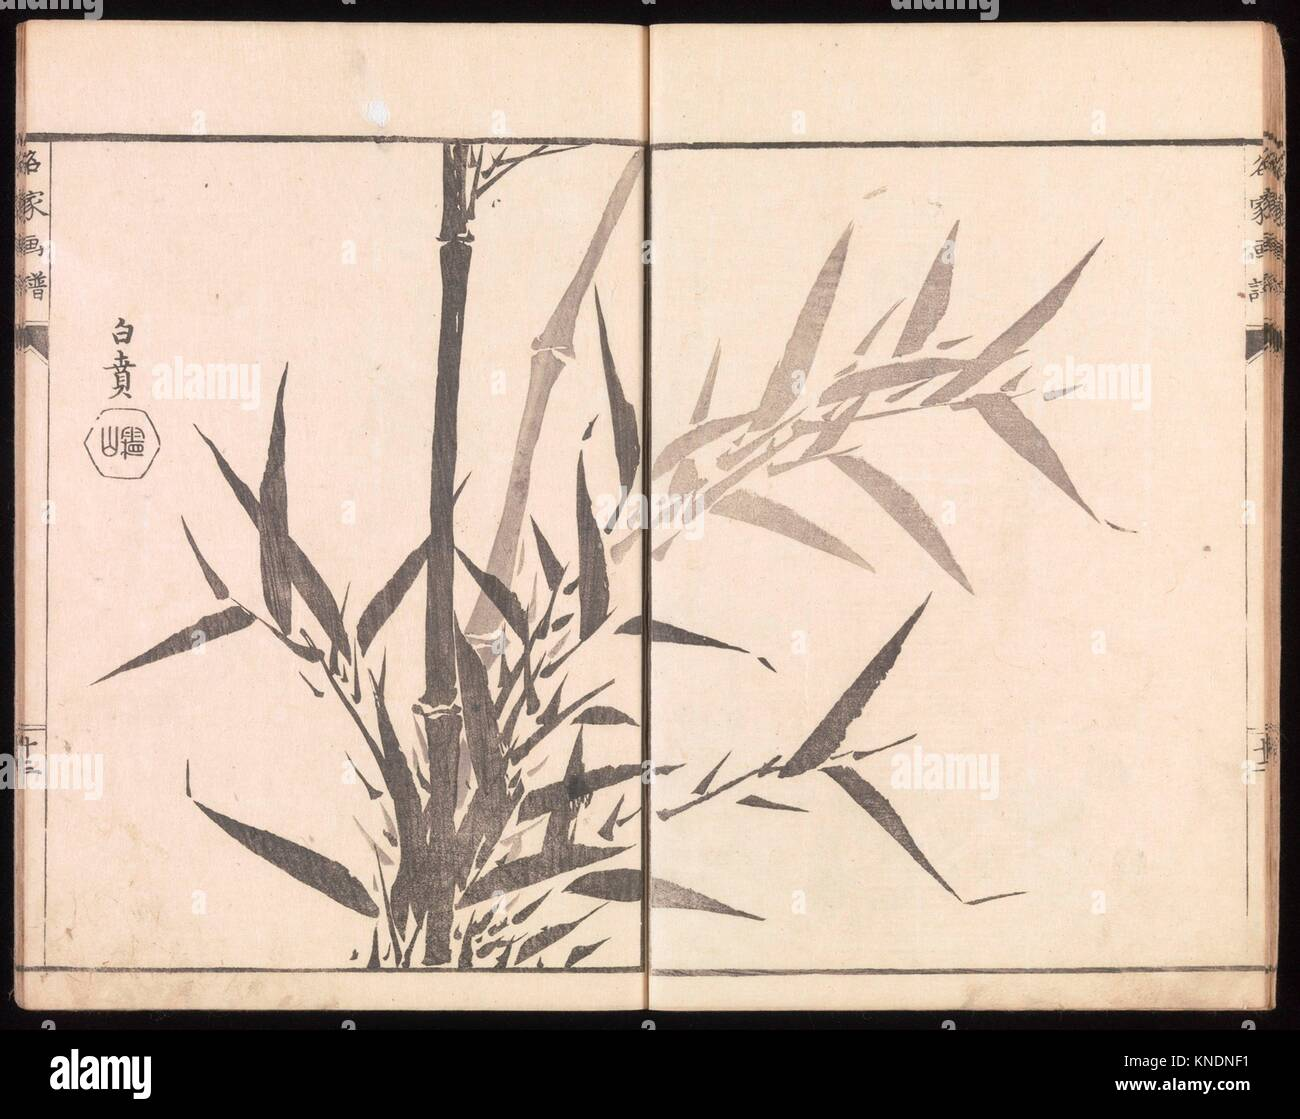 Sketches Reproduced from Works of Famous Artists. Artist: Kawanabe Kyosai (Japanese, 1831-1889) and many others; Period: Edo period (1615-1868); Stock Photo